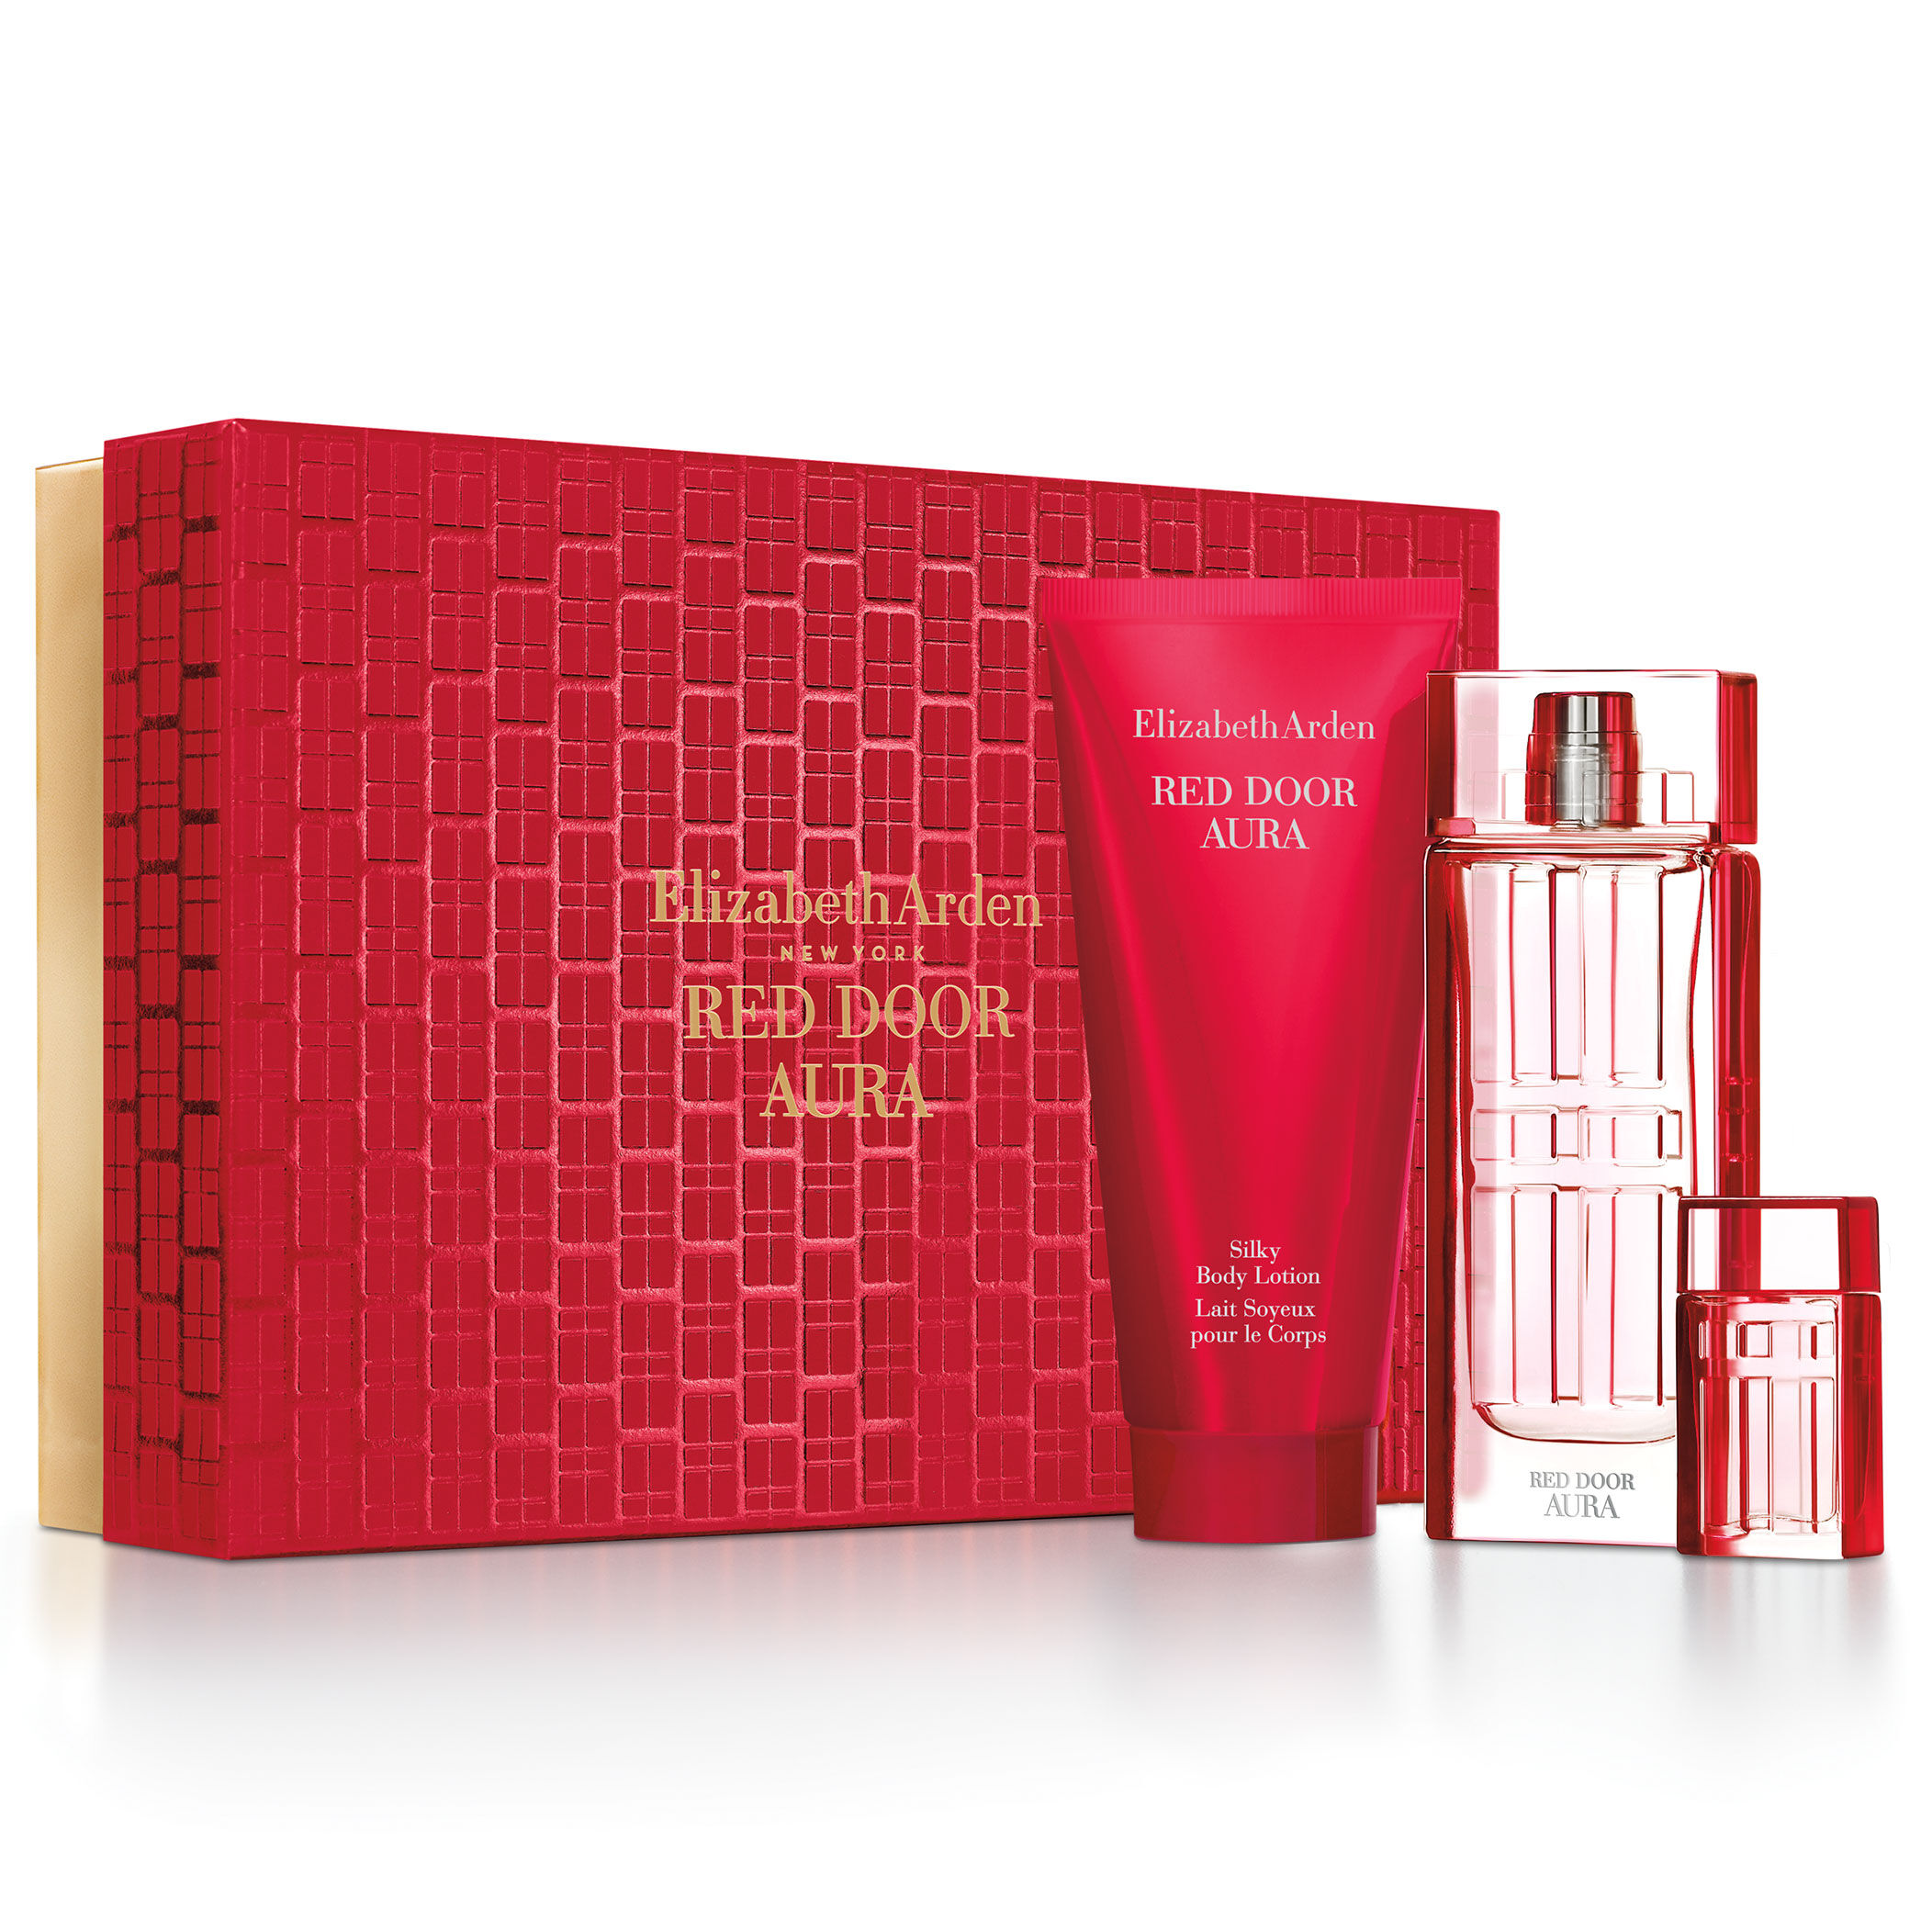 Red Door Aura Gift Set  large Red Door Aura Gift Set  large Red Door Aura Gift Set  large  sc 1 st  Elizabeth Arden & Red Door Aura Holiday Gift Set